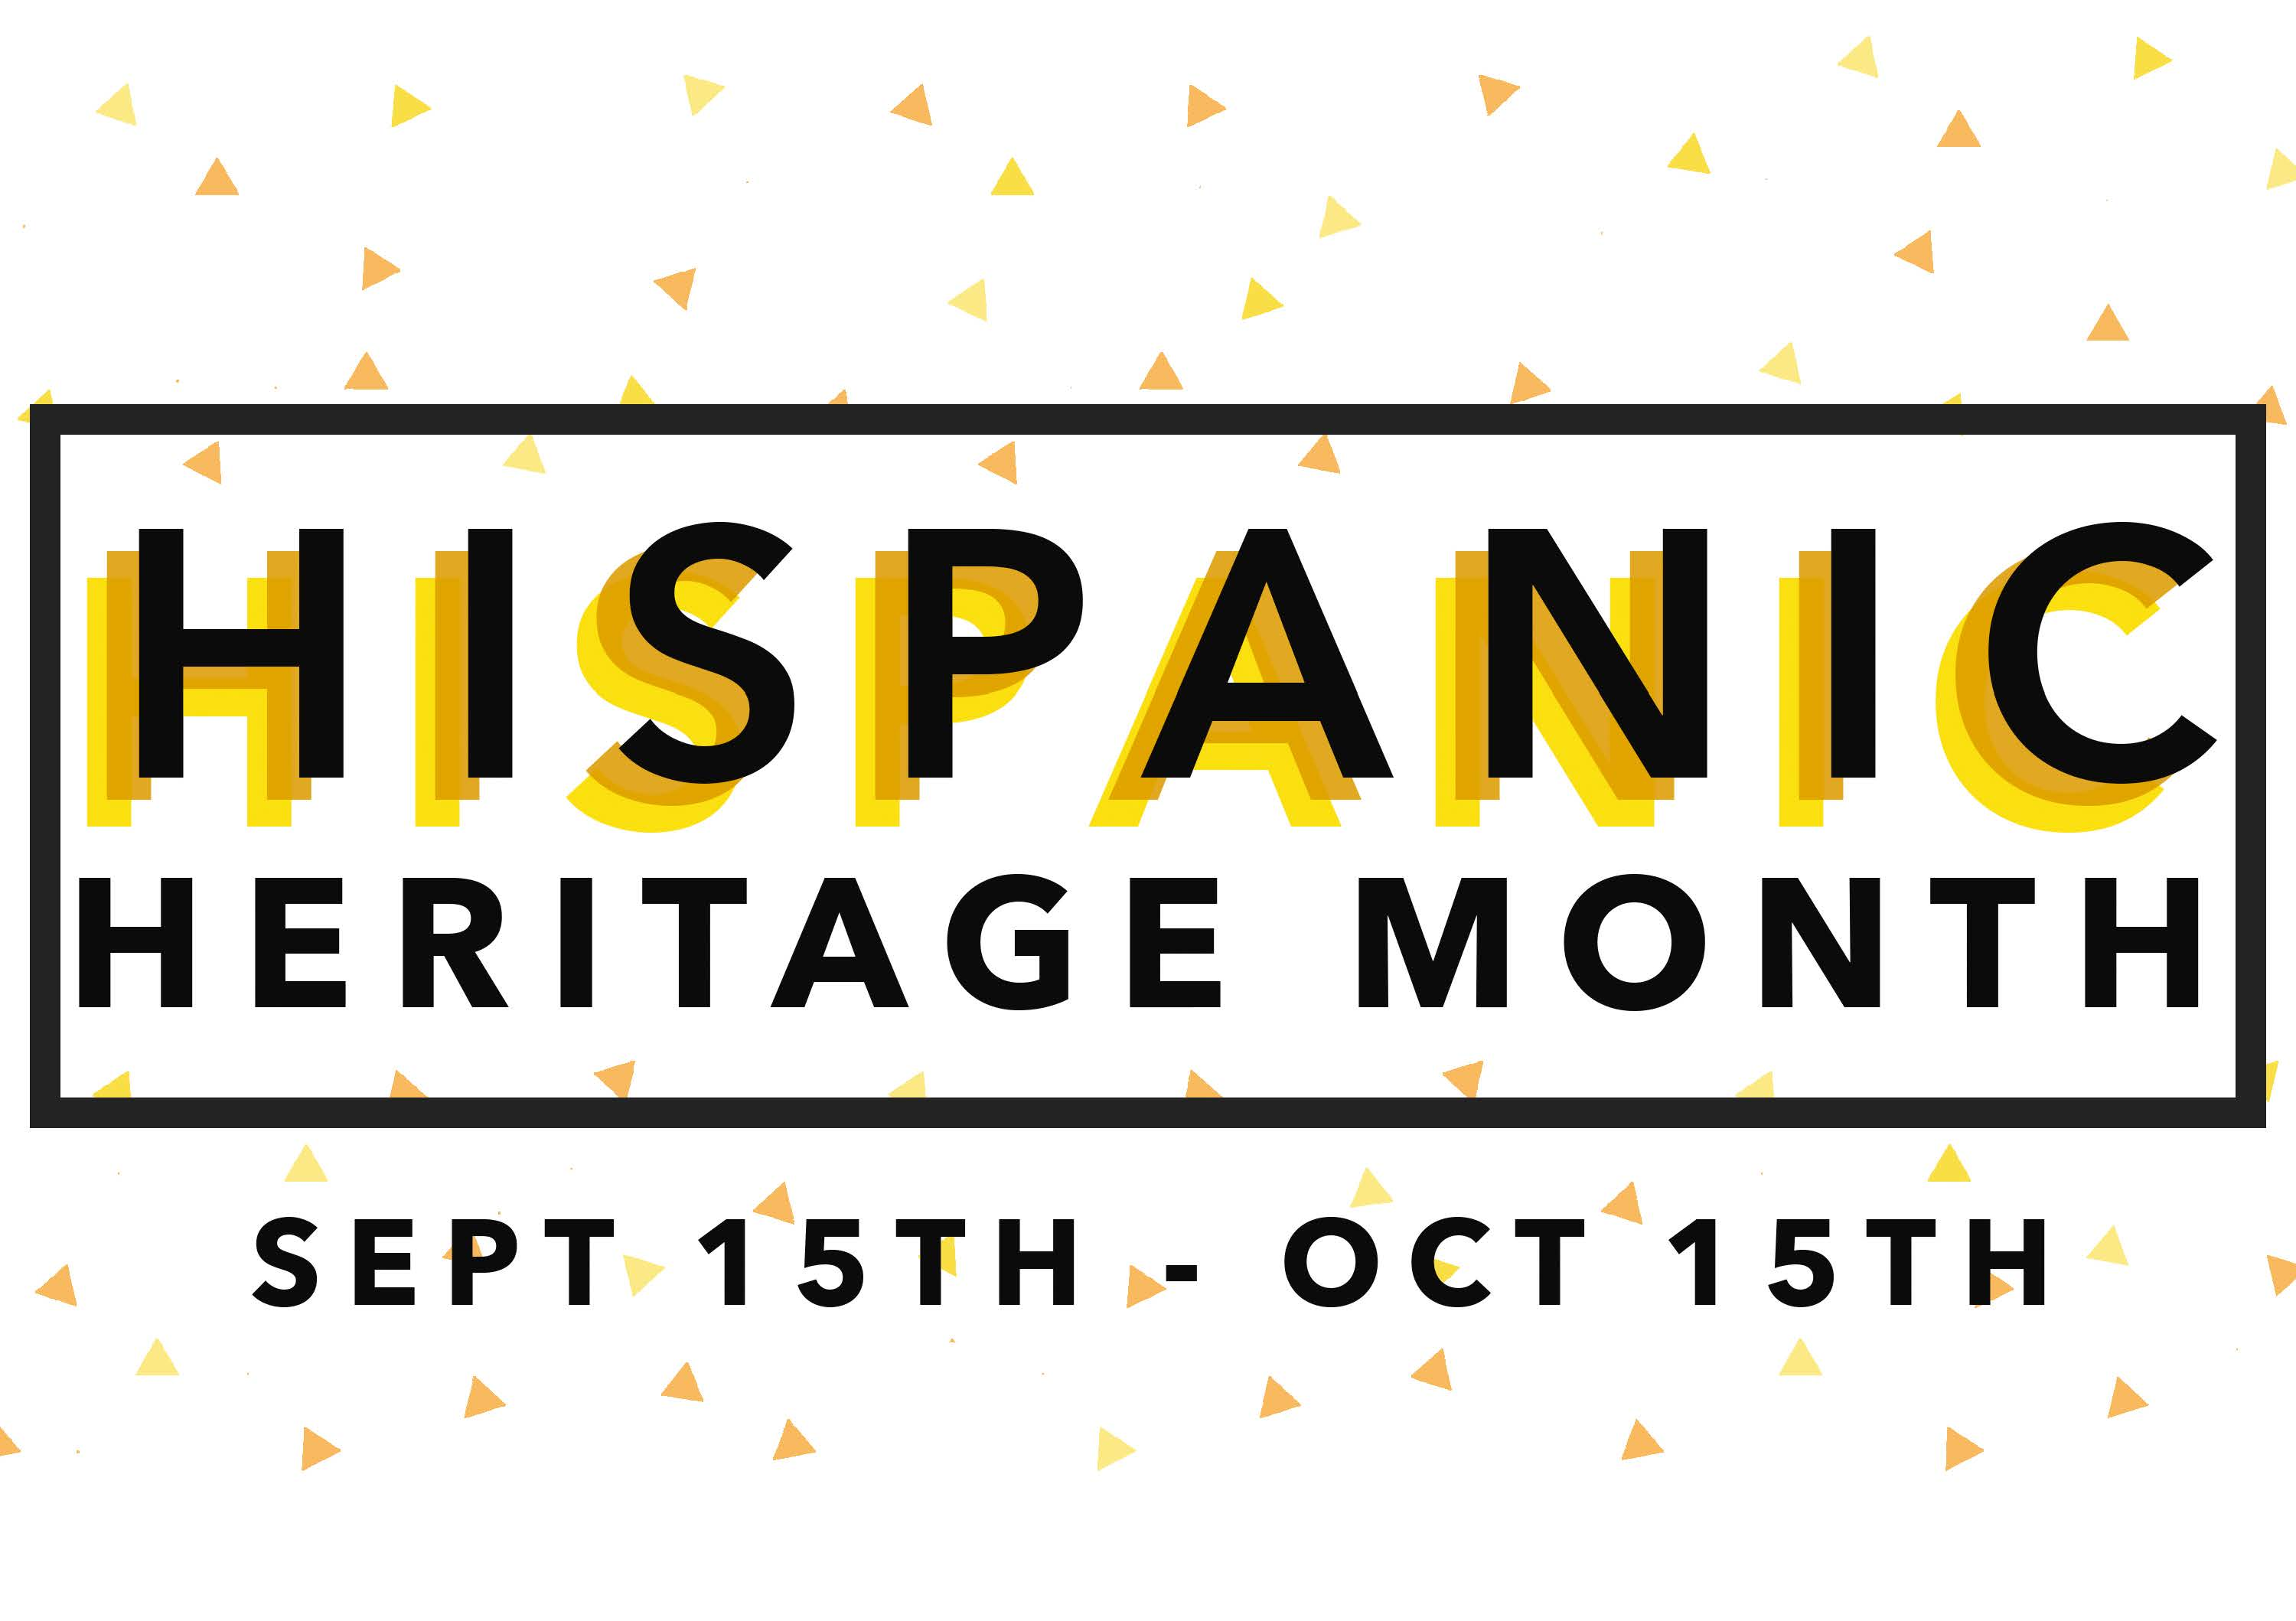 Hispanic Heritage Month September 15th -  October 15th